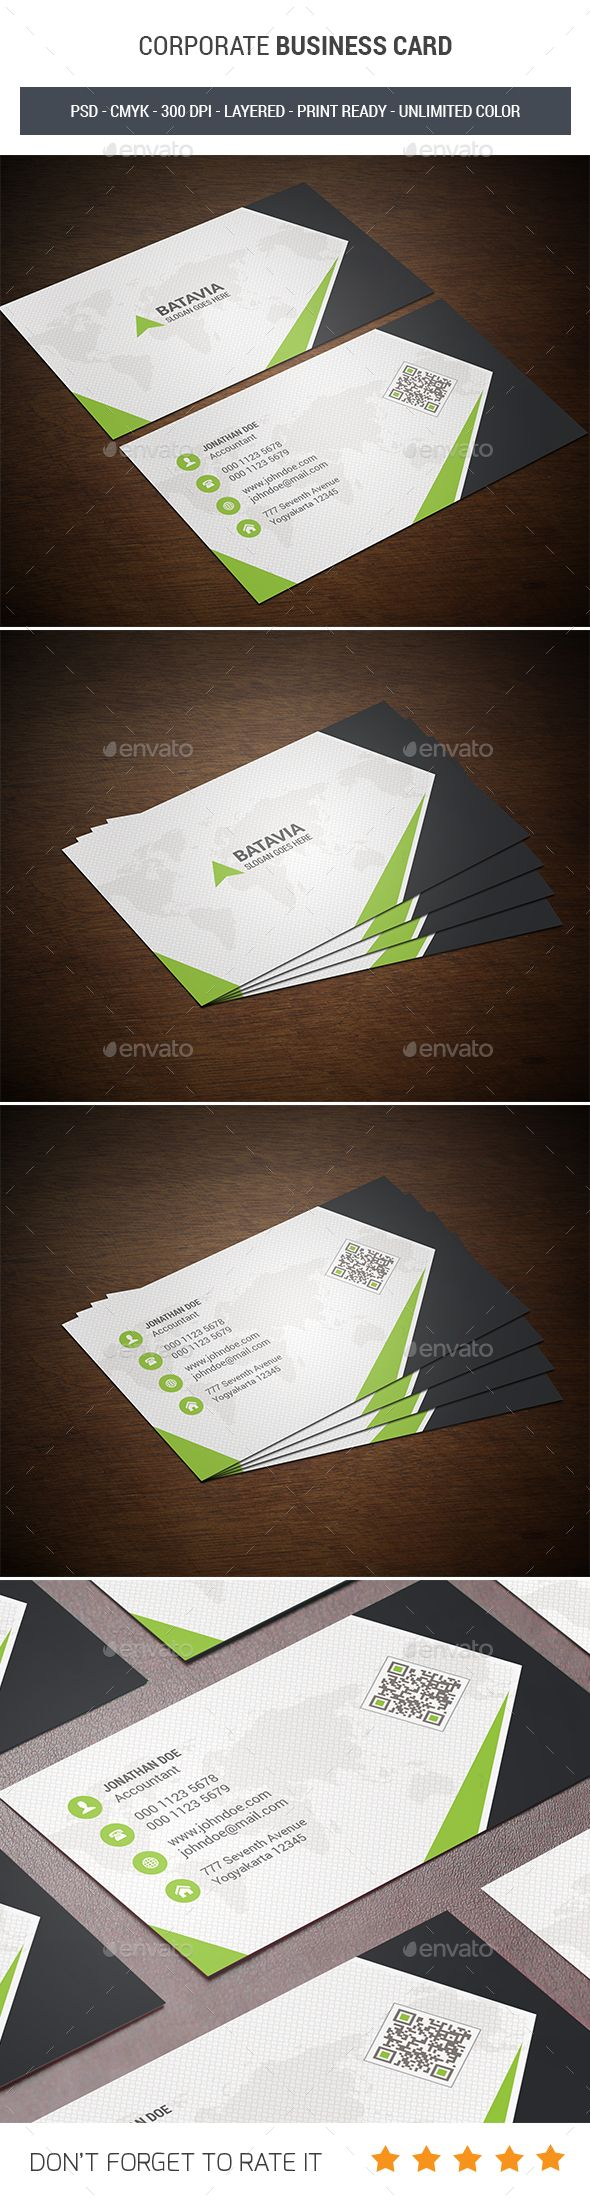 312 best business card images on pinterest business card templates 312 best business card images on pinterest business card templates visiting card templates and business card design reheart Gallery